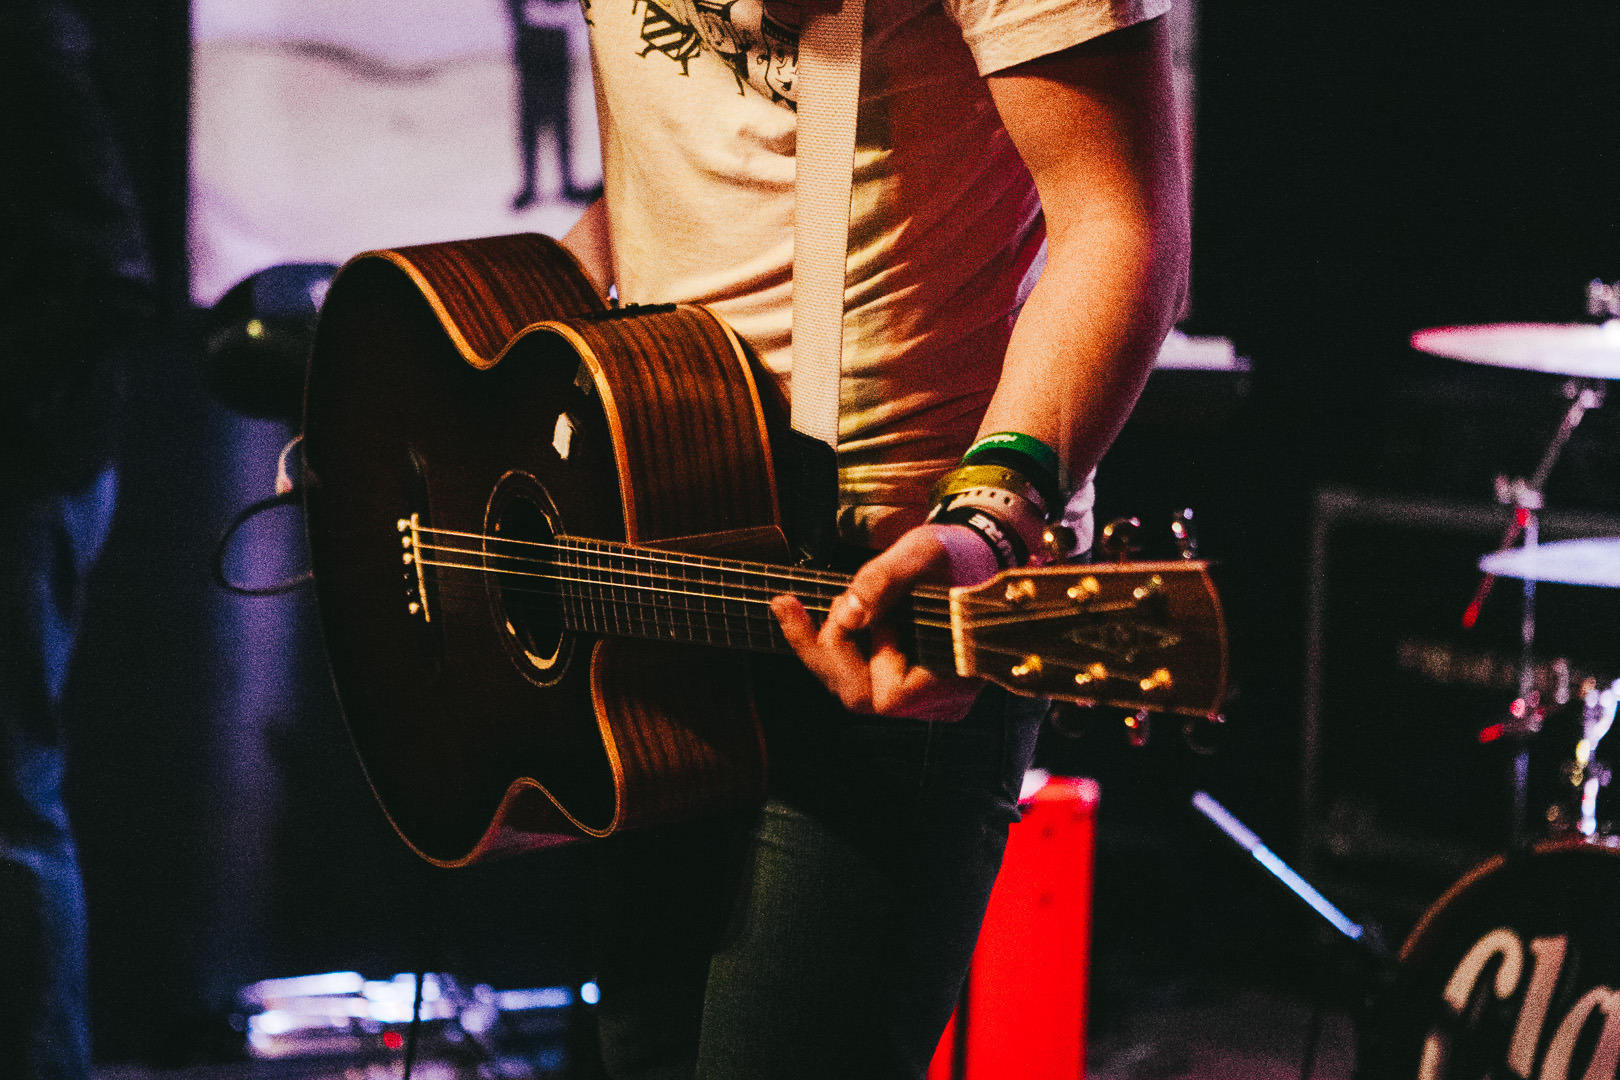 alli and i live concert photography-22.jpg